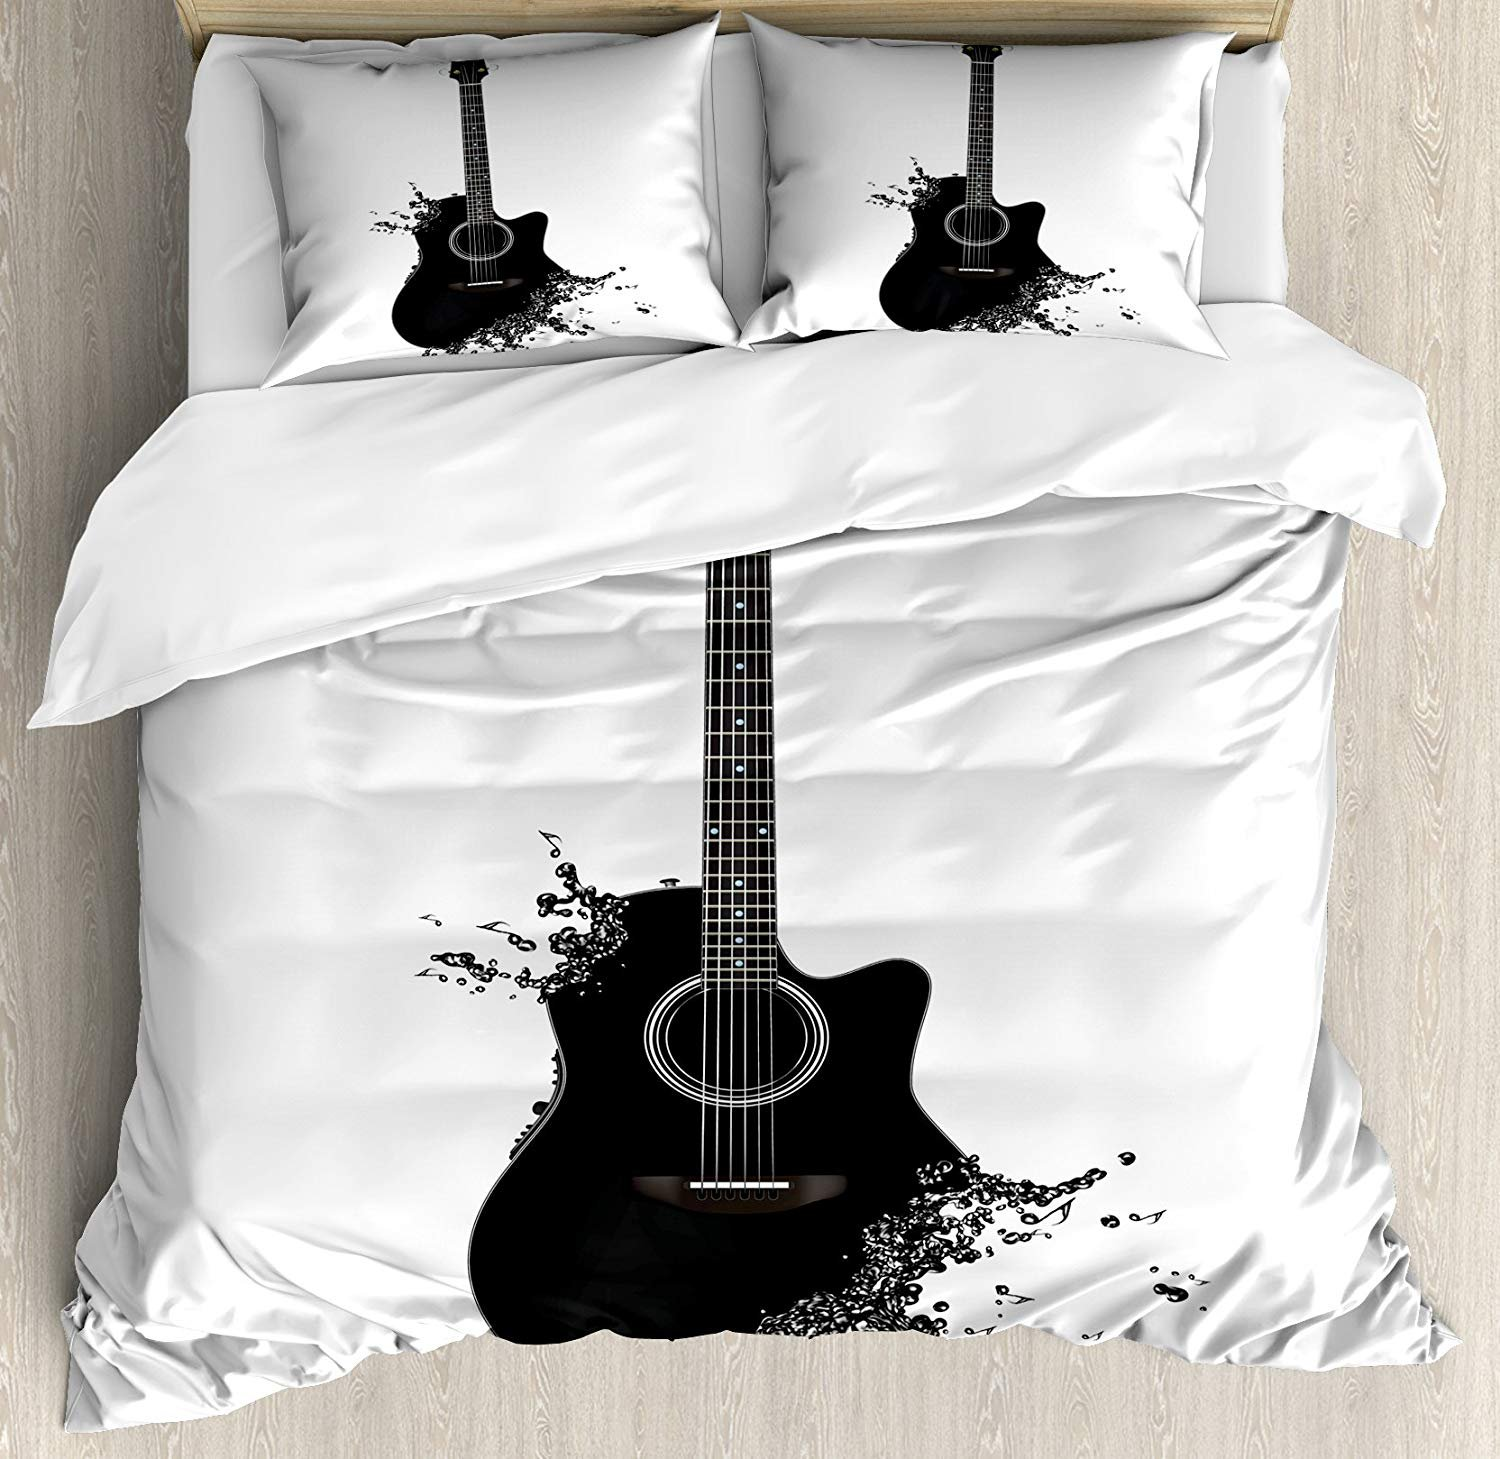 Black White,Twin Size TweetyBed 20180716HYJA-AMBS-545Twin Guitar Bedding Sets Monochrome Musical Instrument with Strings Acoustic Color Splashes Creative Outlet 4 Piece Duvet Cover Set Quilt Bedspread for Childrens//Kids//Teens//Adults